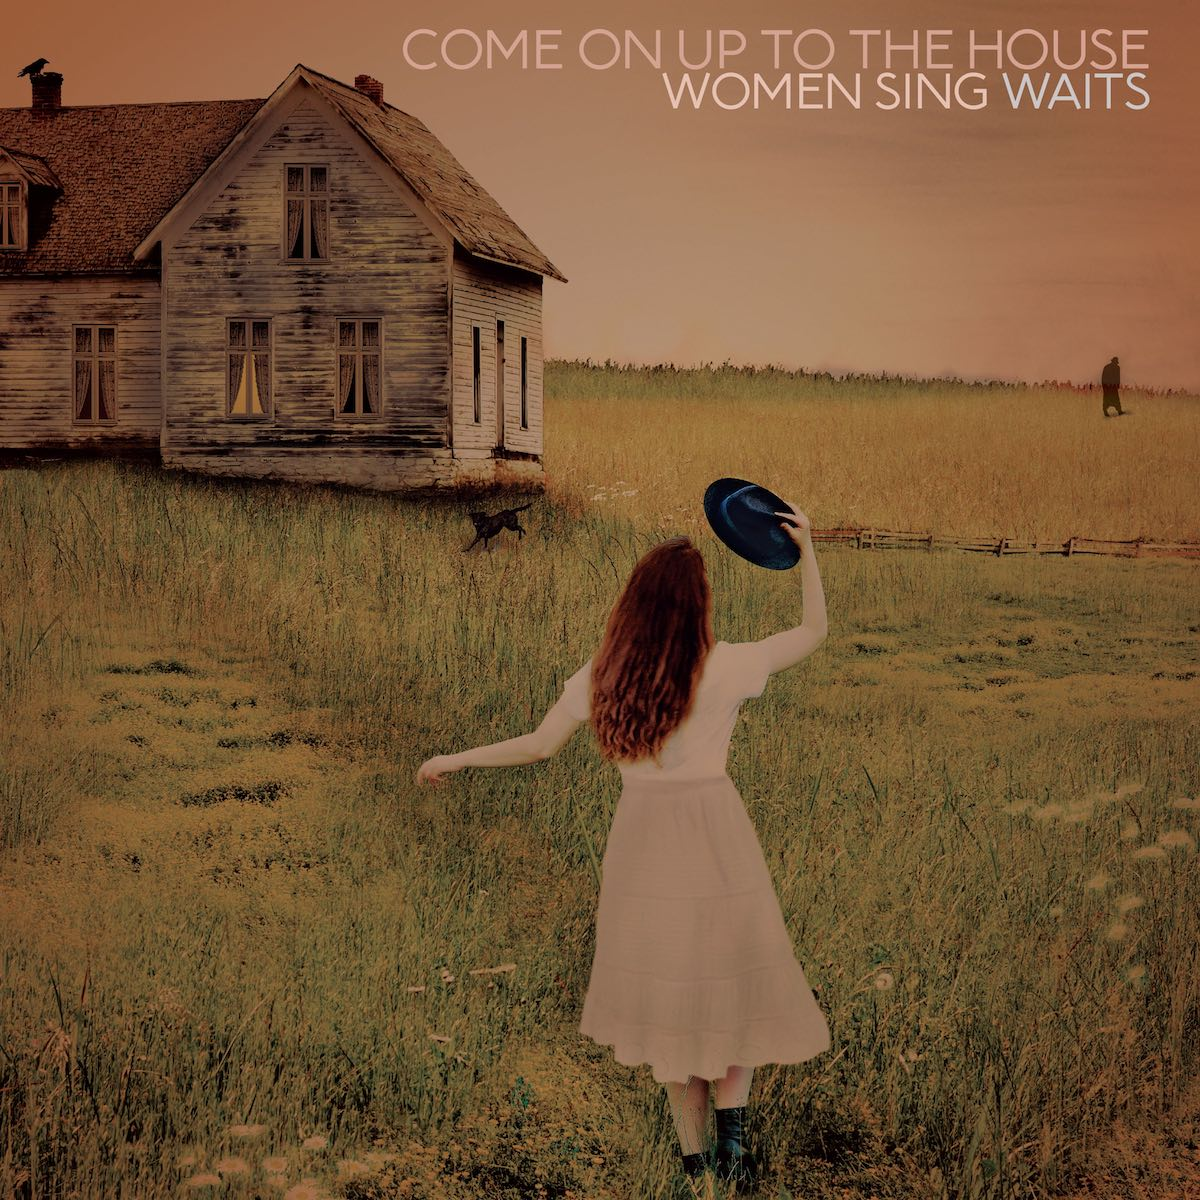 Tom Waits Tribute Album Come on up to the house women sing waits album cover artwork